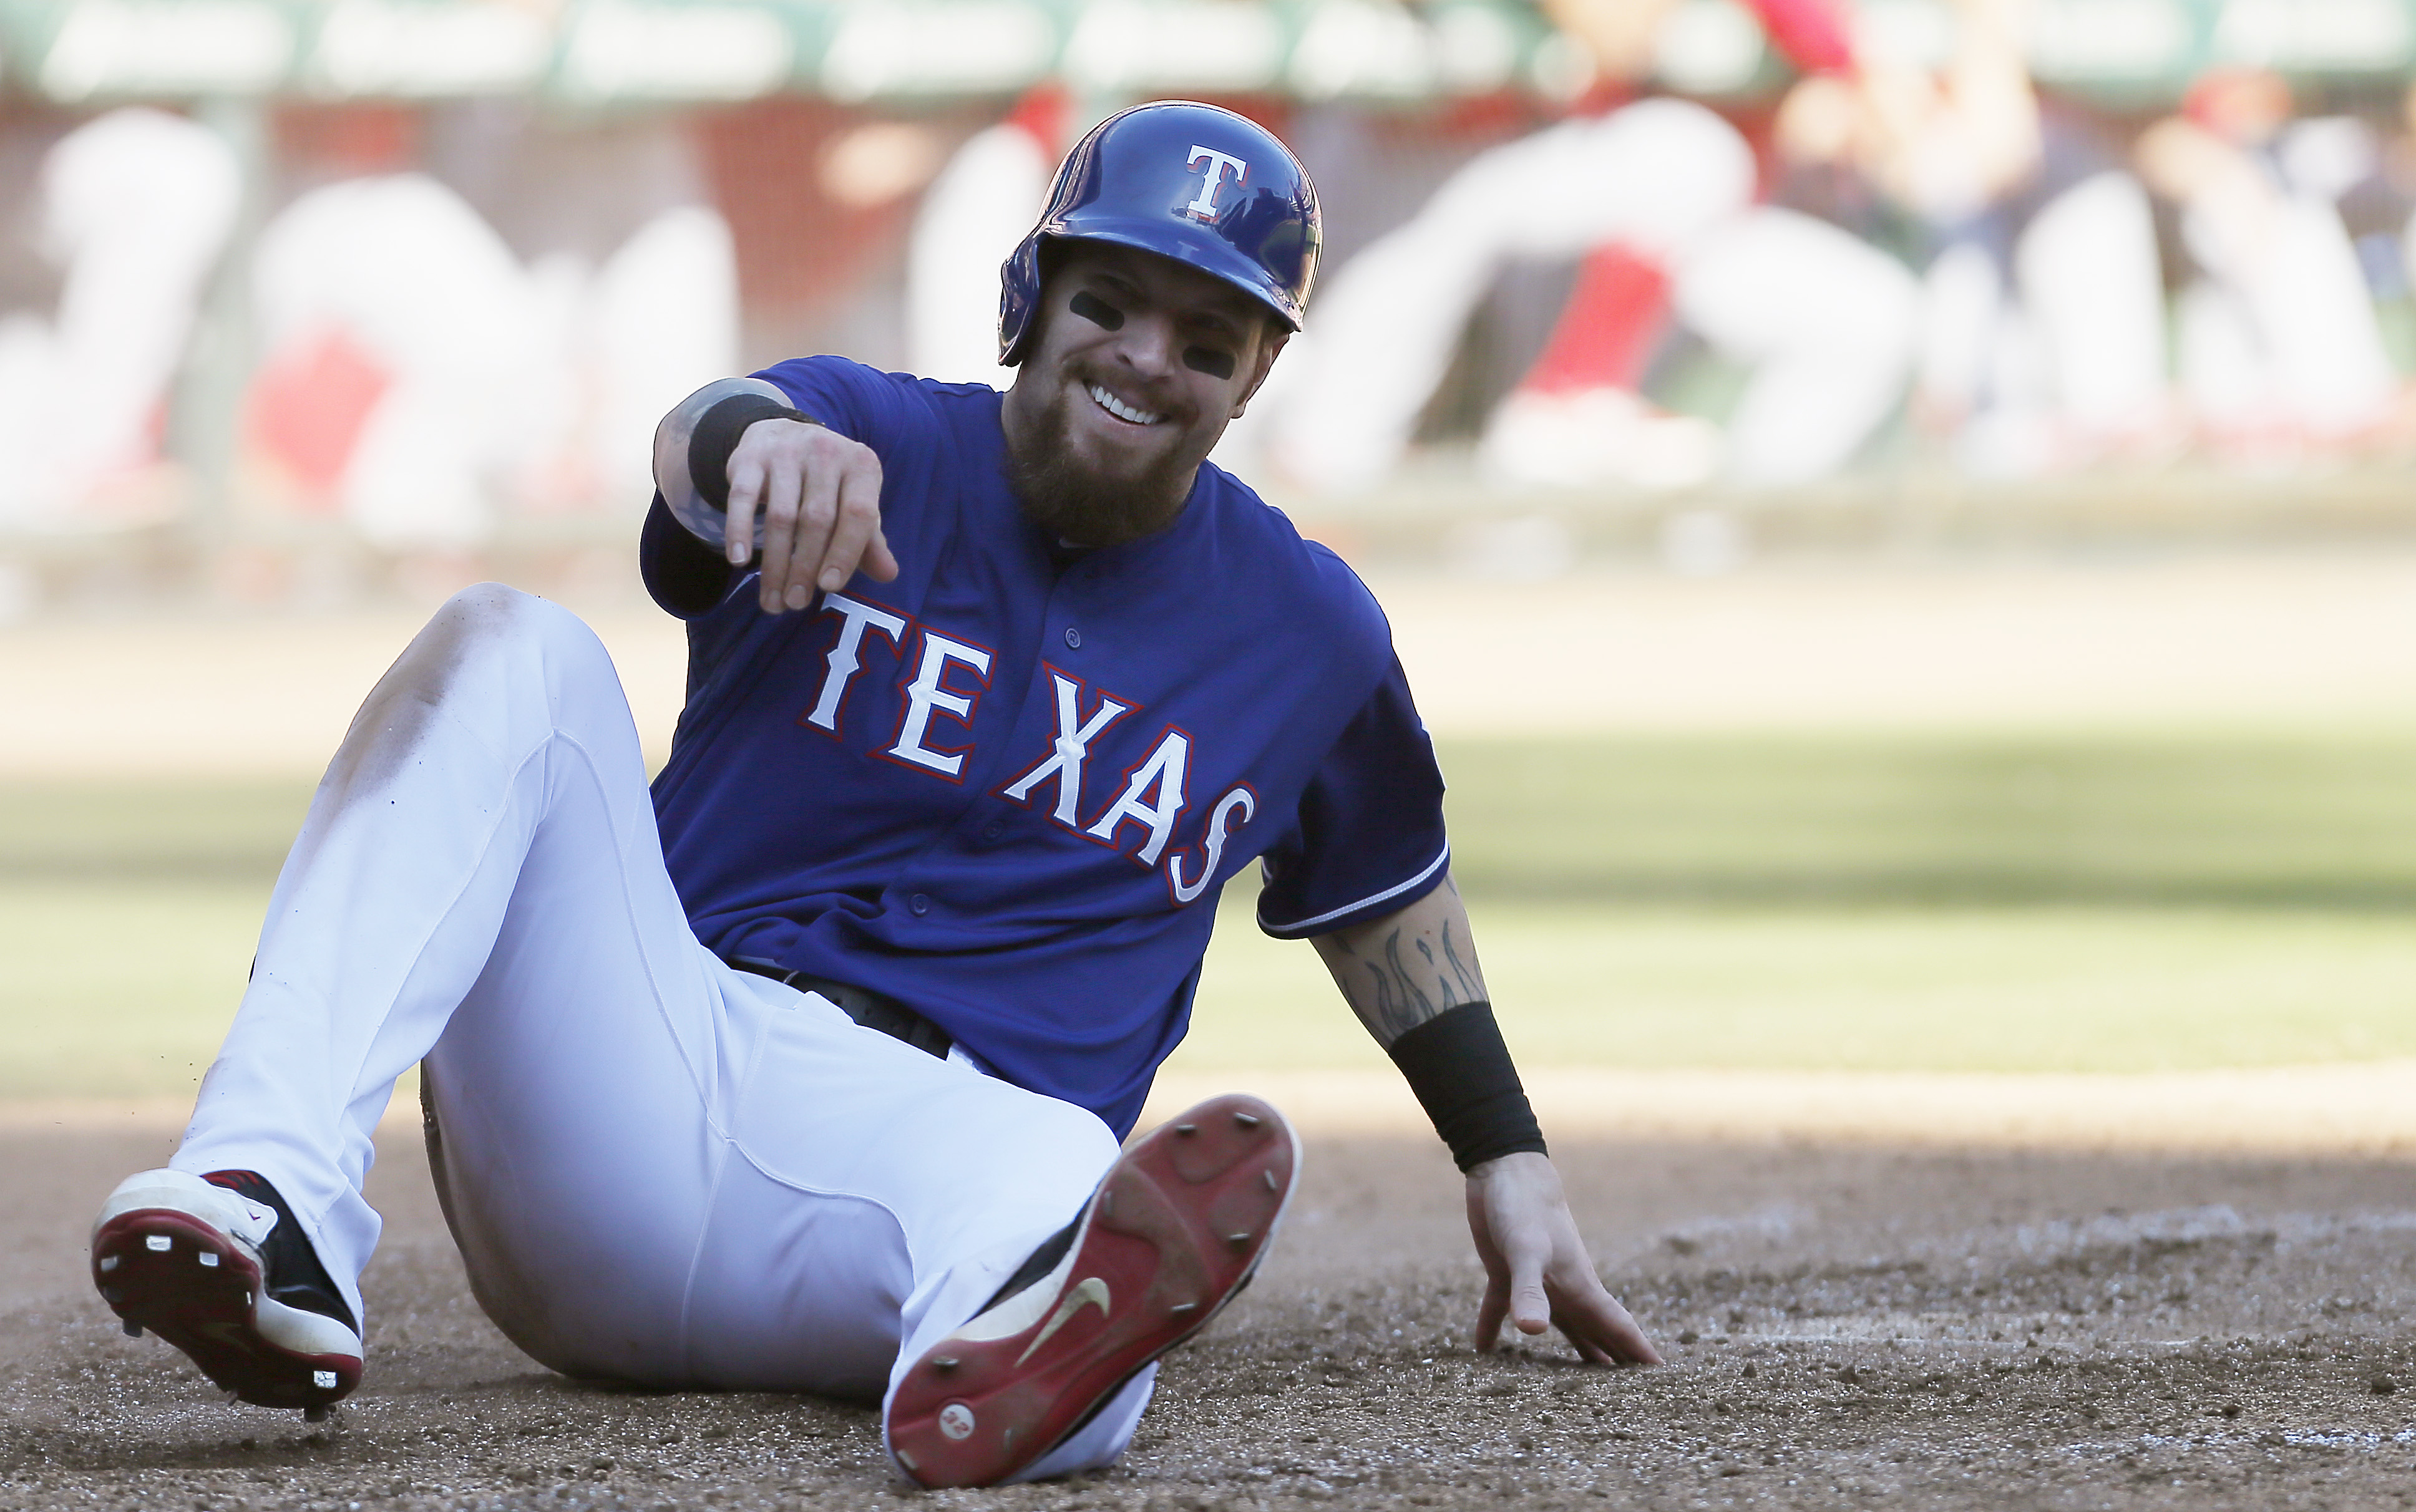 ARLINGTON, TX - OCTOBER 4: Josh Hamilton #32 of the Texas Rangers reacts after scoring a run on a Elvis Andrus RBI double during the seventh inning of a baseball game against the Los Angeles Angels at Globe Life Park on October 4, 2015 in Arlington, Texas. Texas won 9-2 and won the AL West Title. (Photo by Brandon Wade/Getty Images)